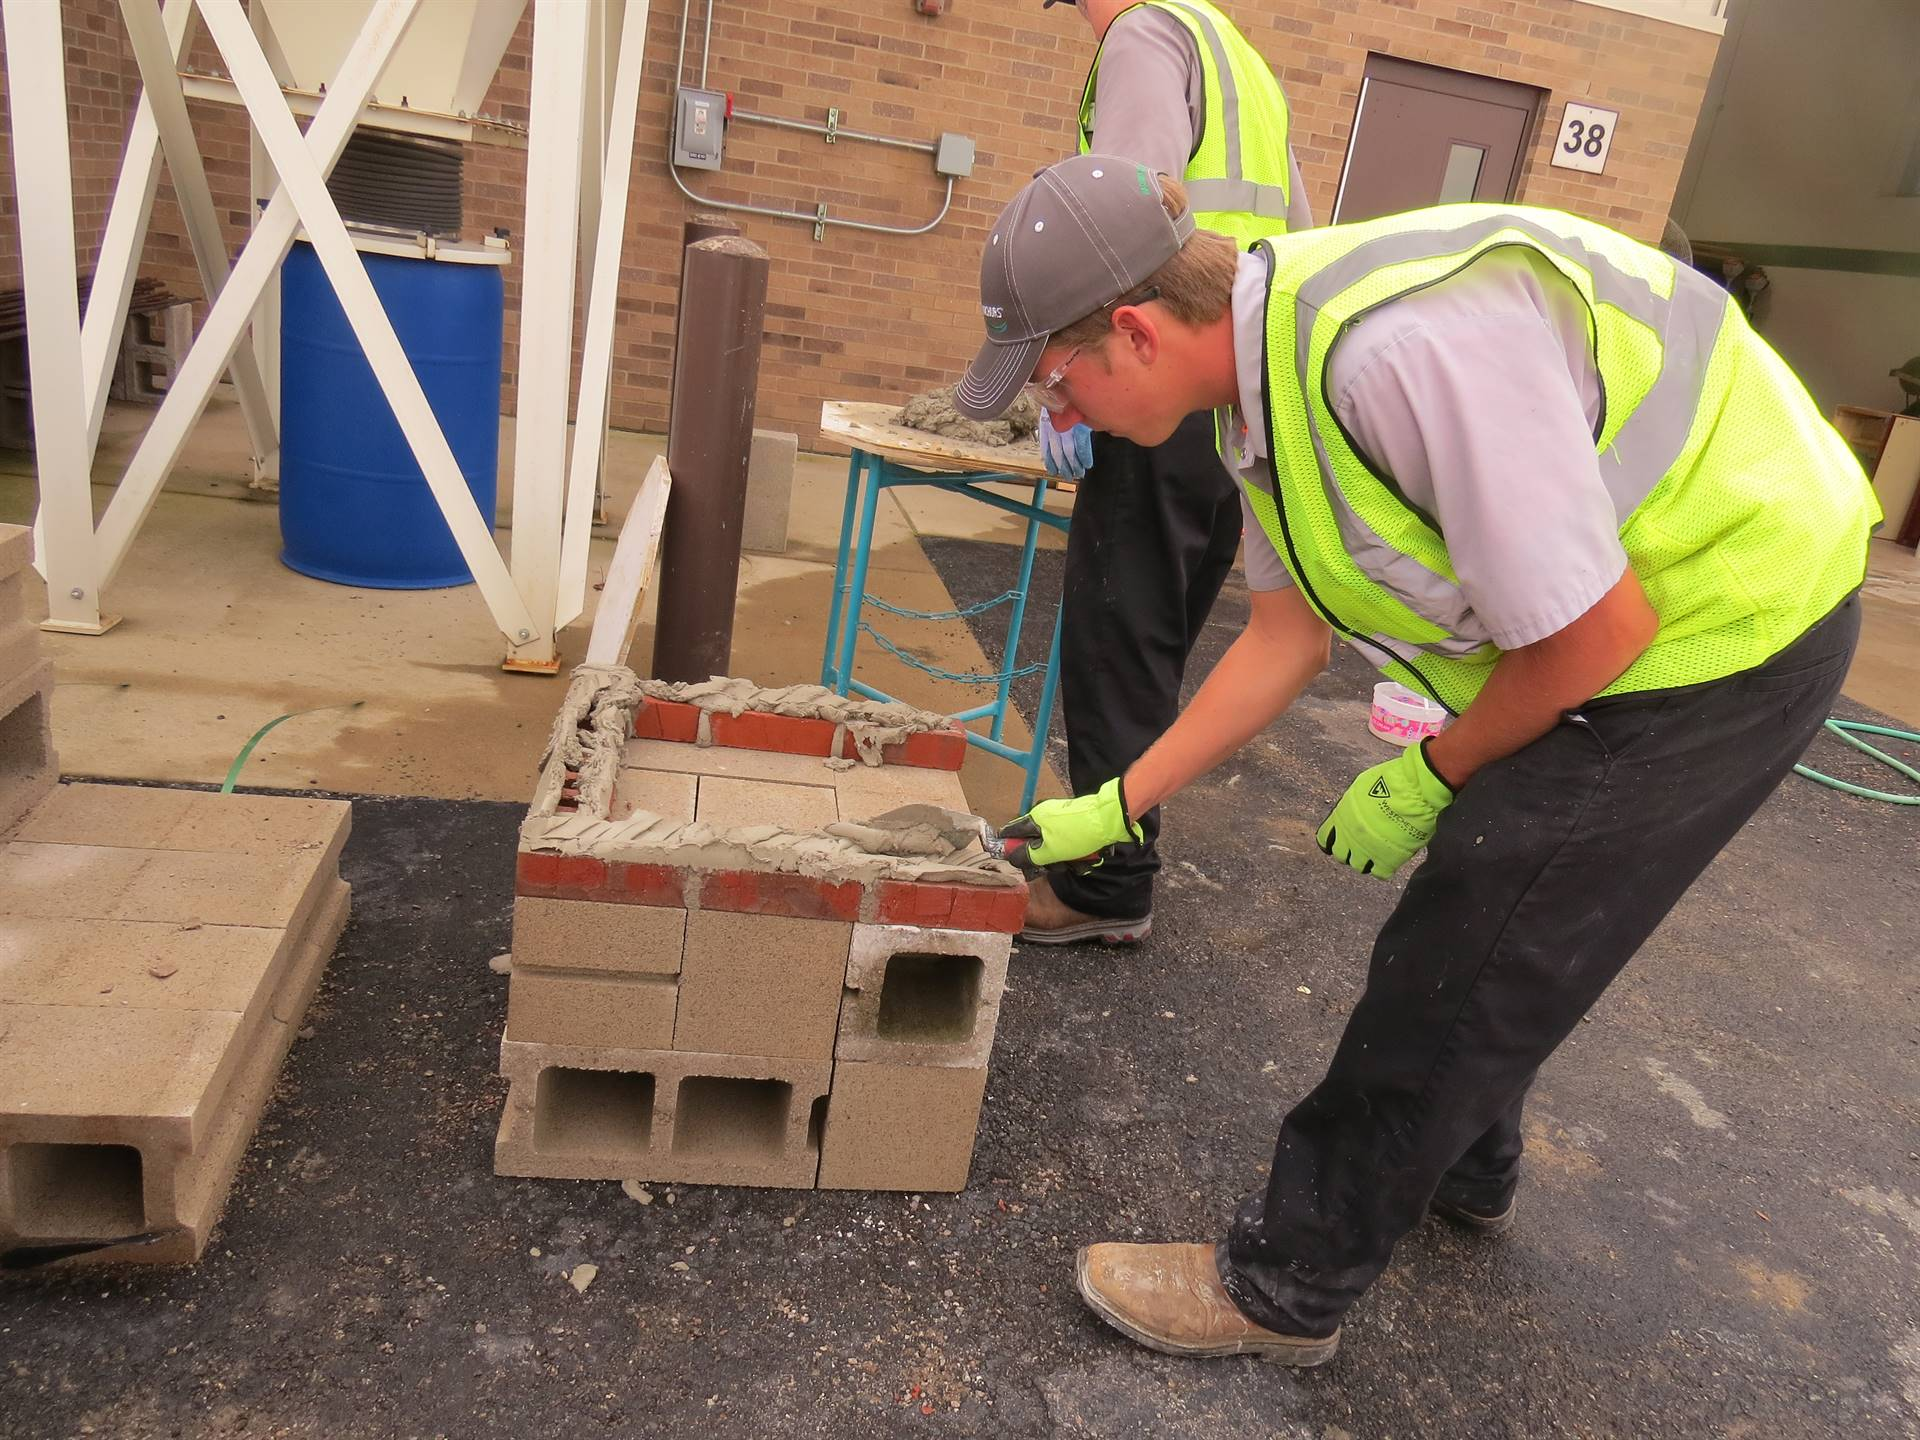 One male student working with brick and mortar